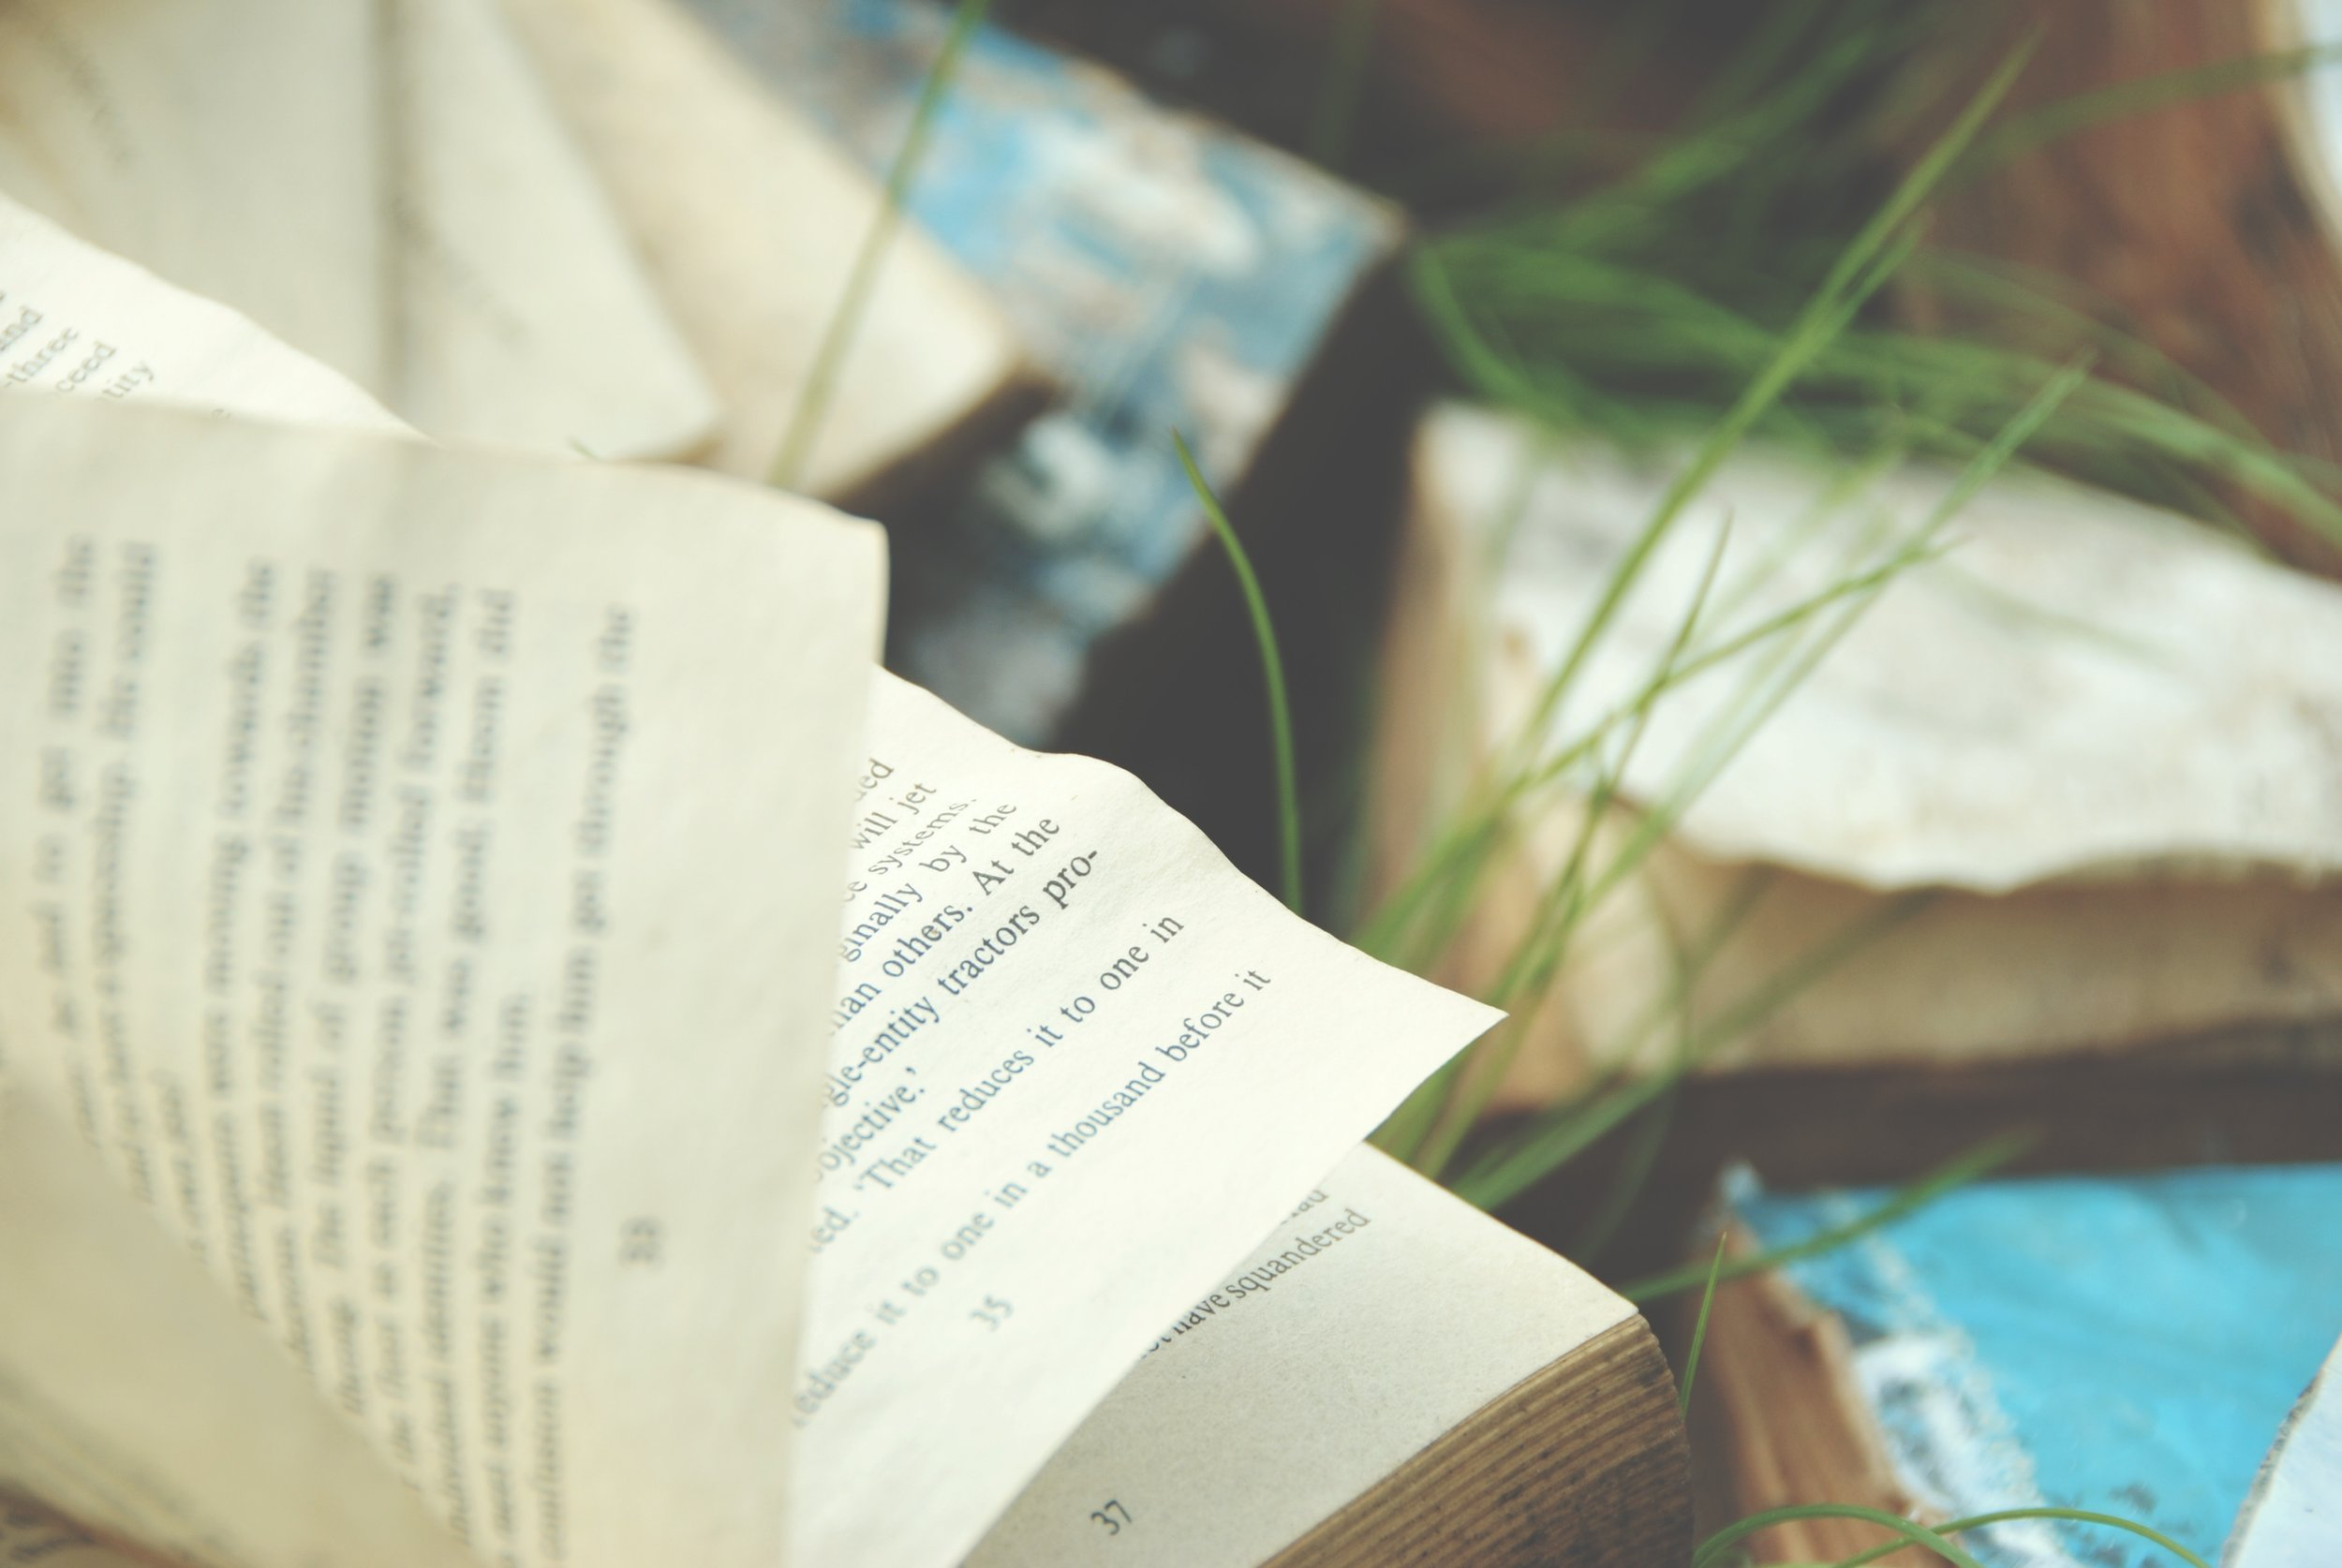 book reading essential for leadership